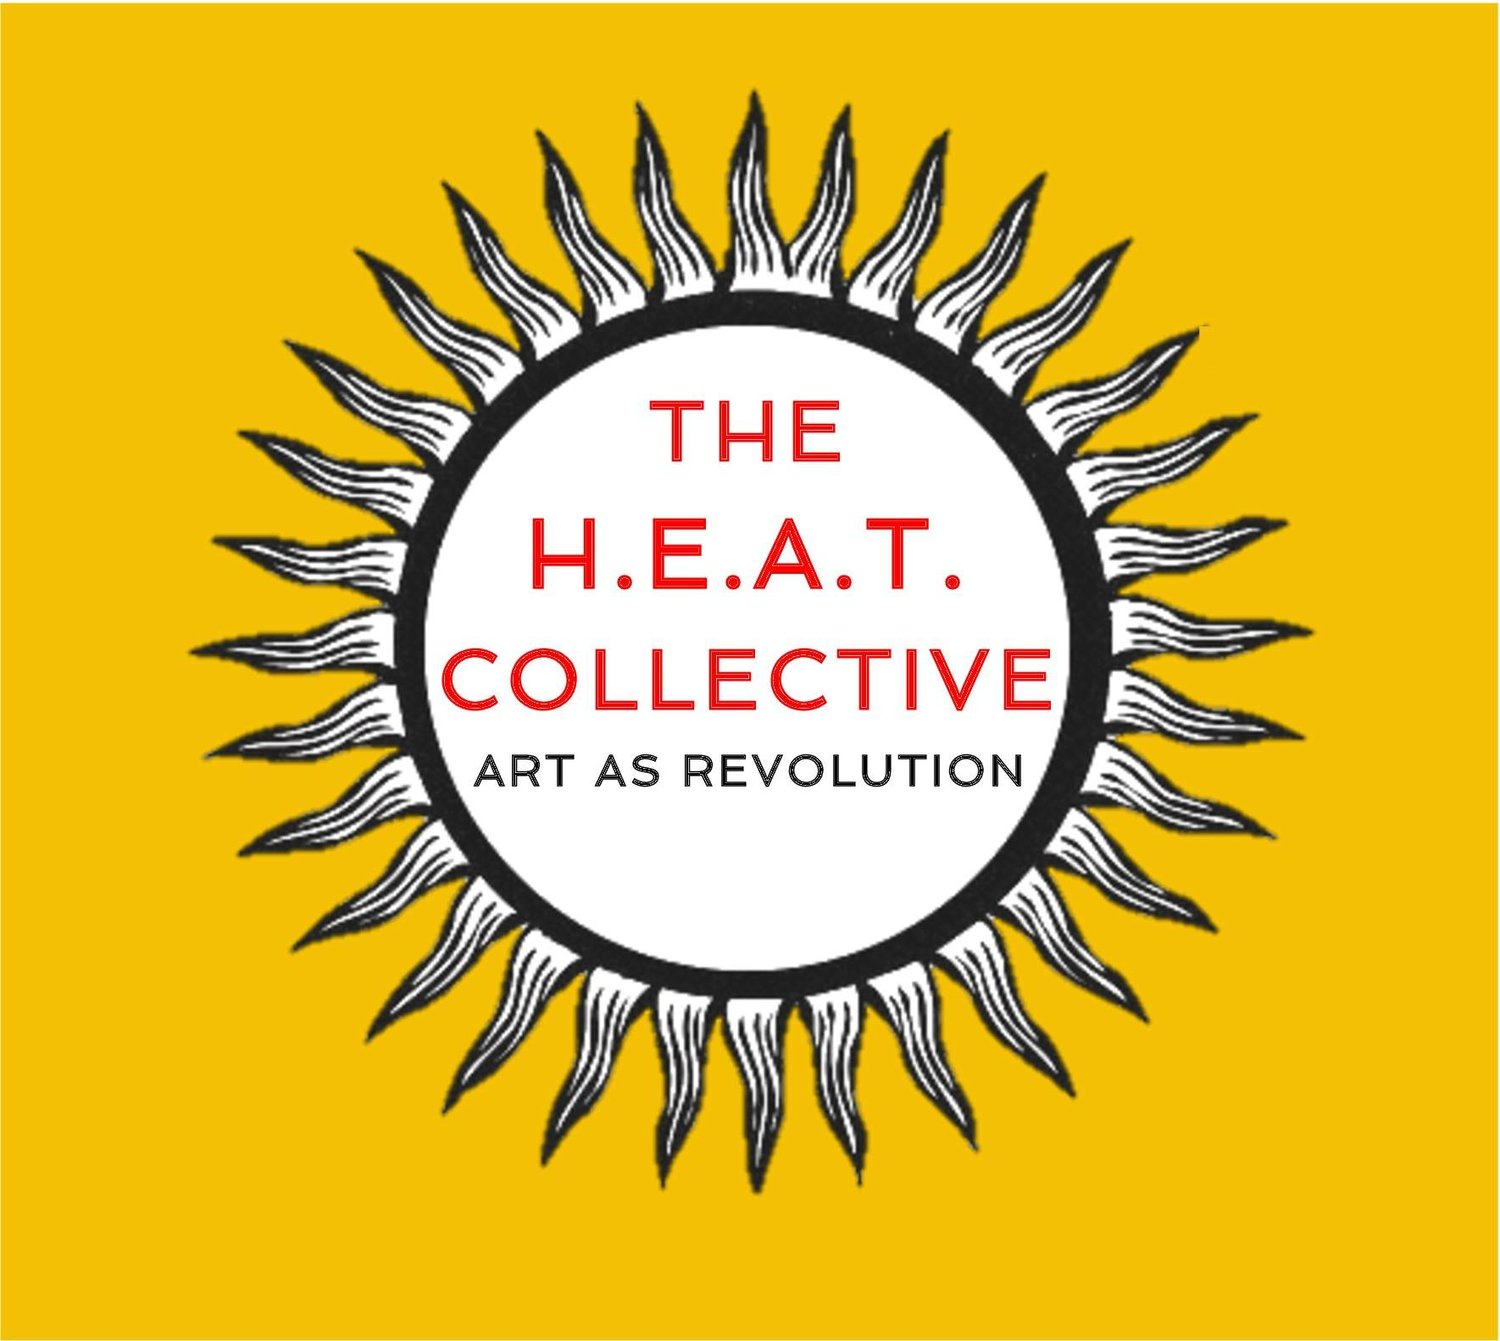 The Heat Collective